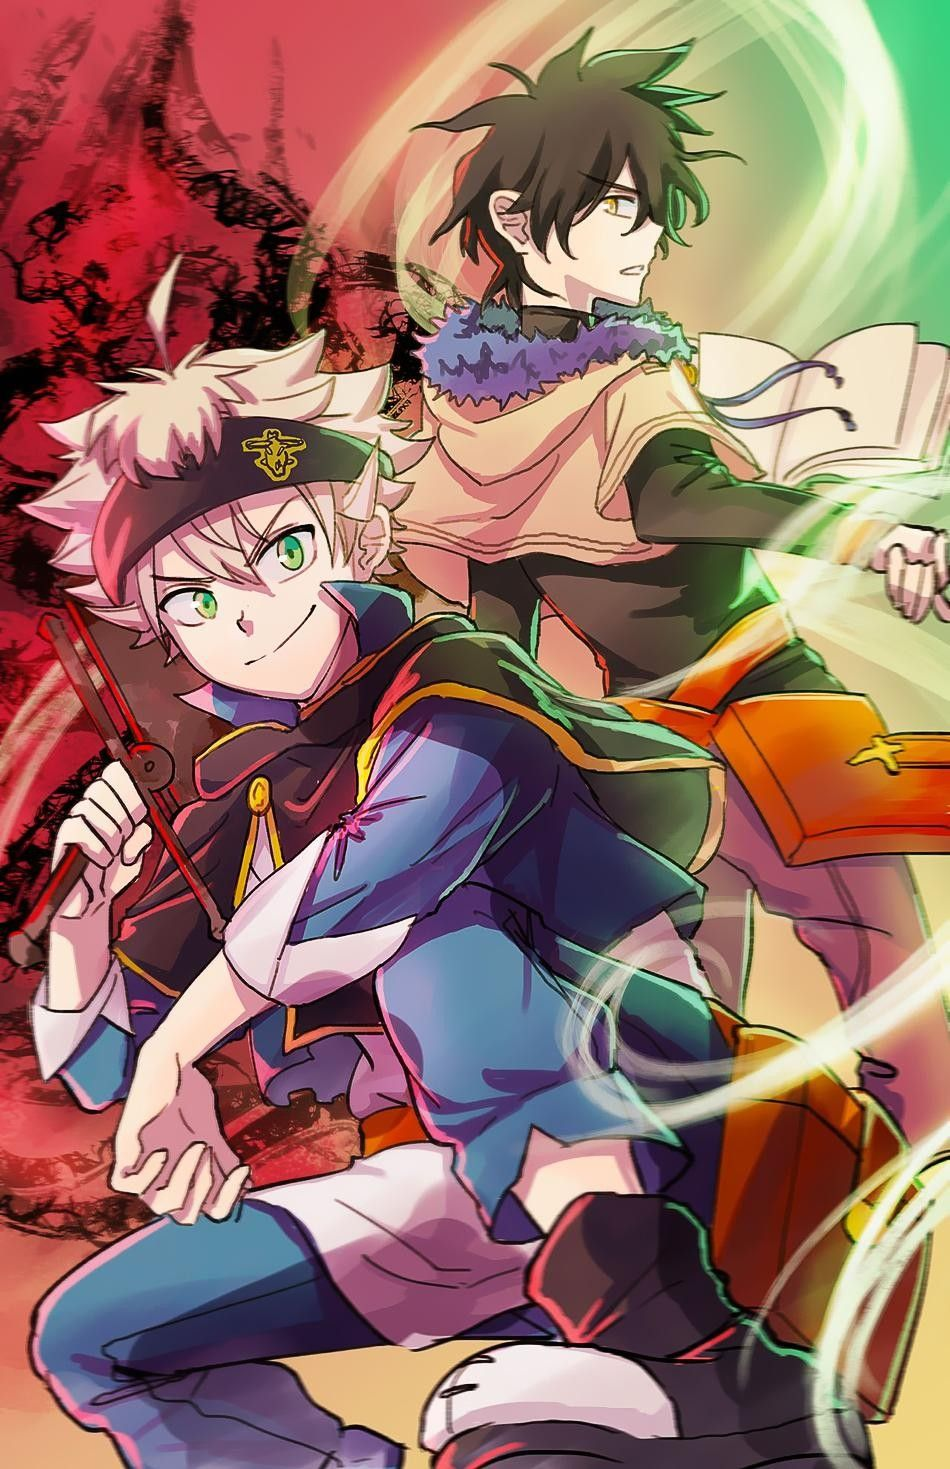 It has been serialized in shueisha's weekly shōnen jump magazine since. Pin by tammy on 2 in 2020 | Black clover anime, Black ...